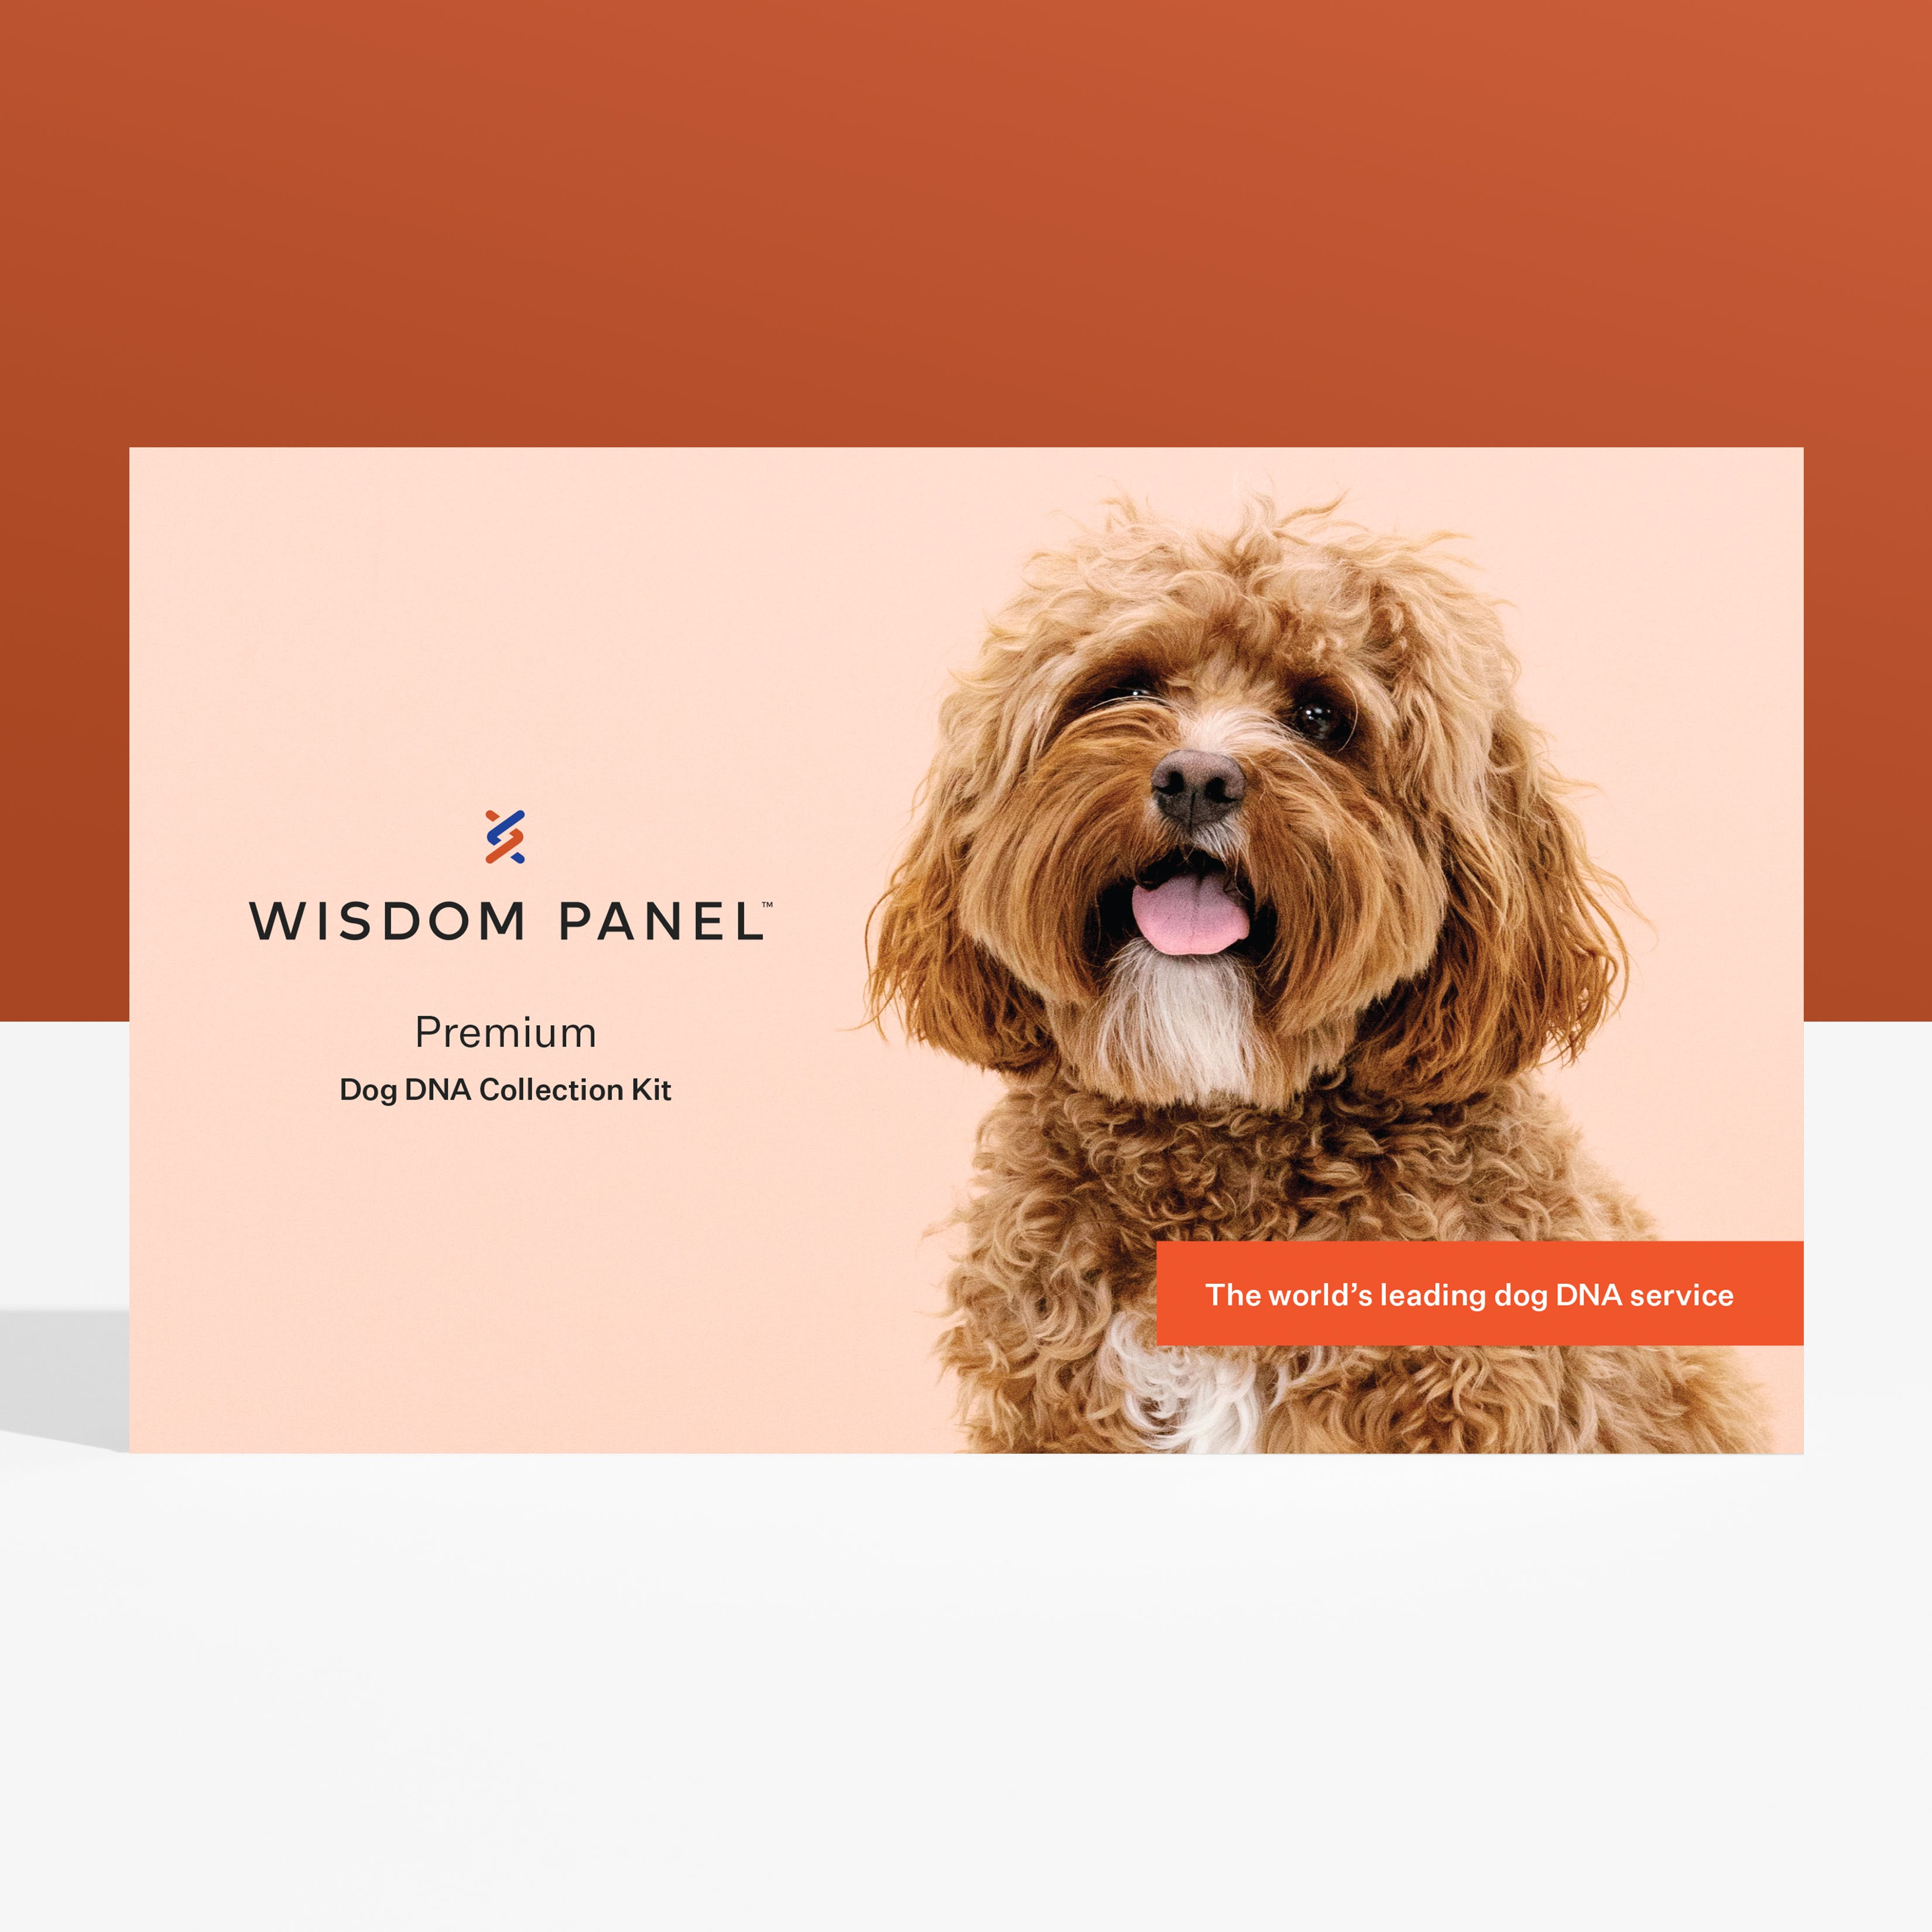 Wisdom Panel Premium DNA test for dogs collection kit